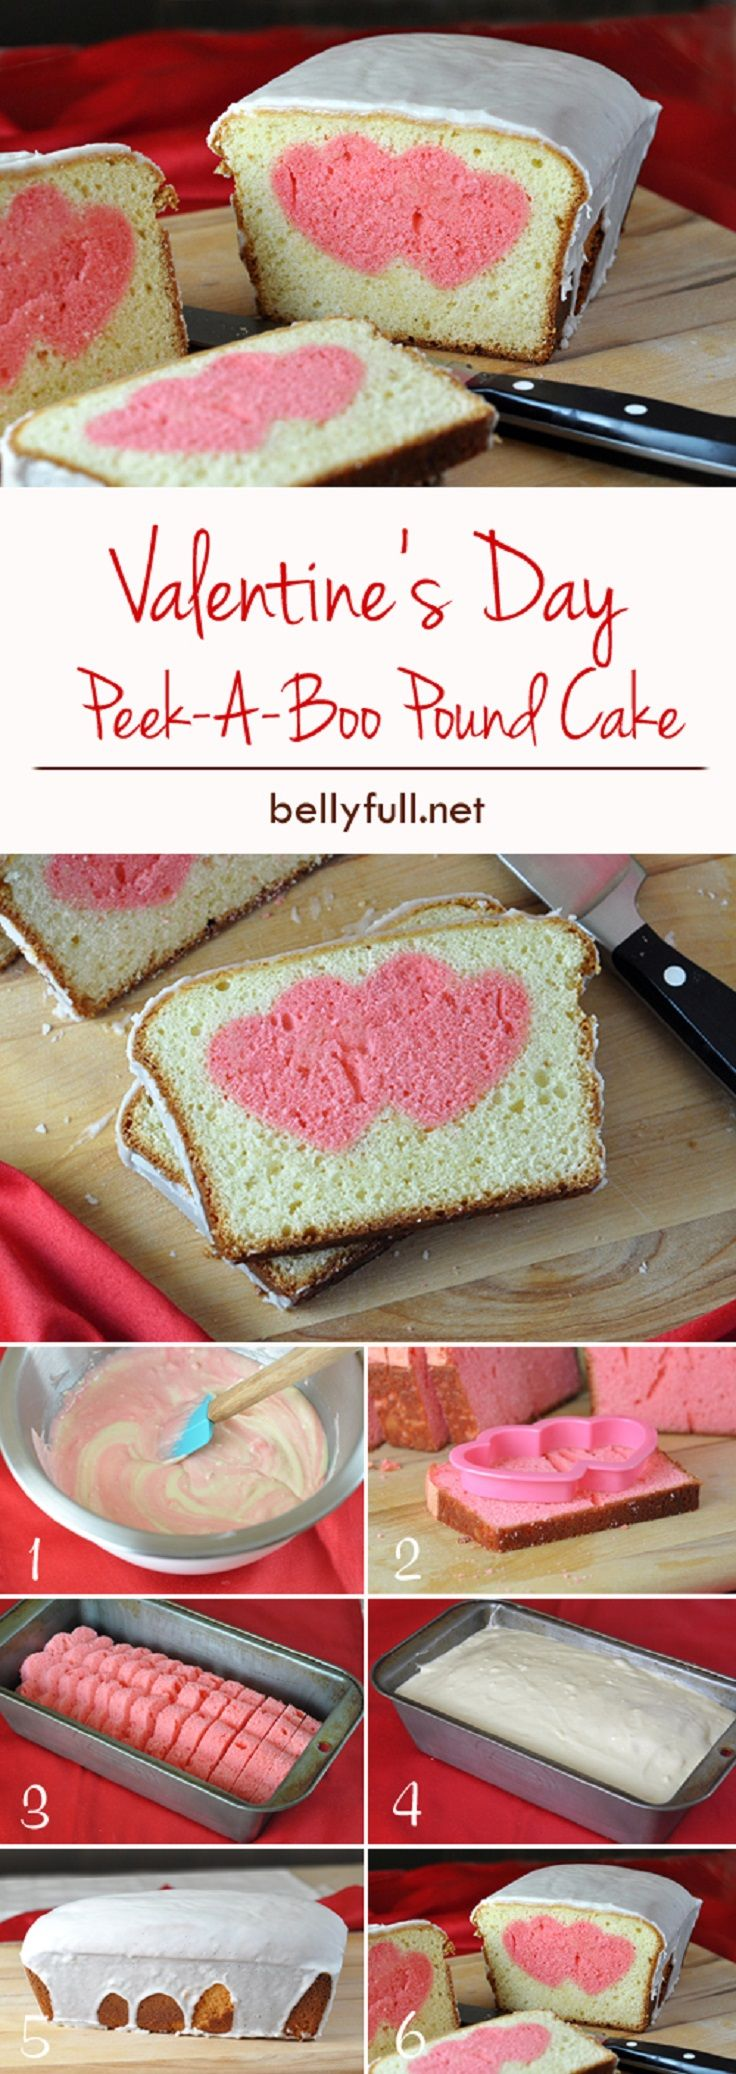 Pink Velvet Roll Cake with Rainbow Chip Frosting - Precious Valentine's Day Food List: 17 Loveable Recipes for a Special Celebration